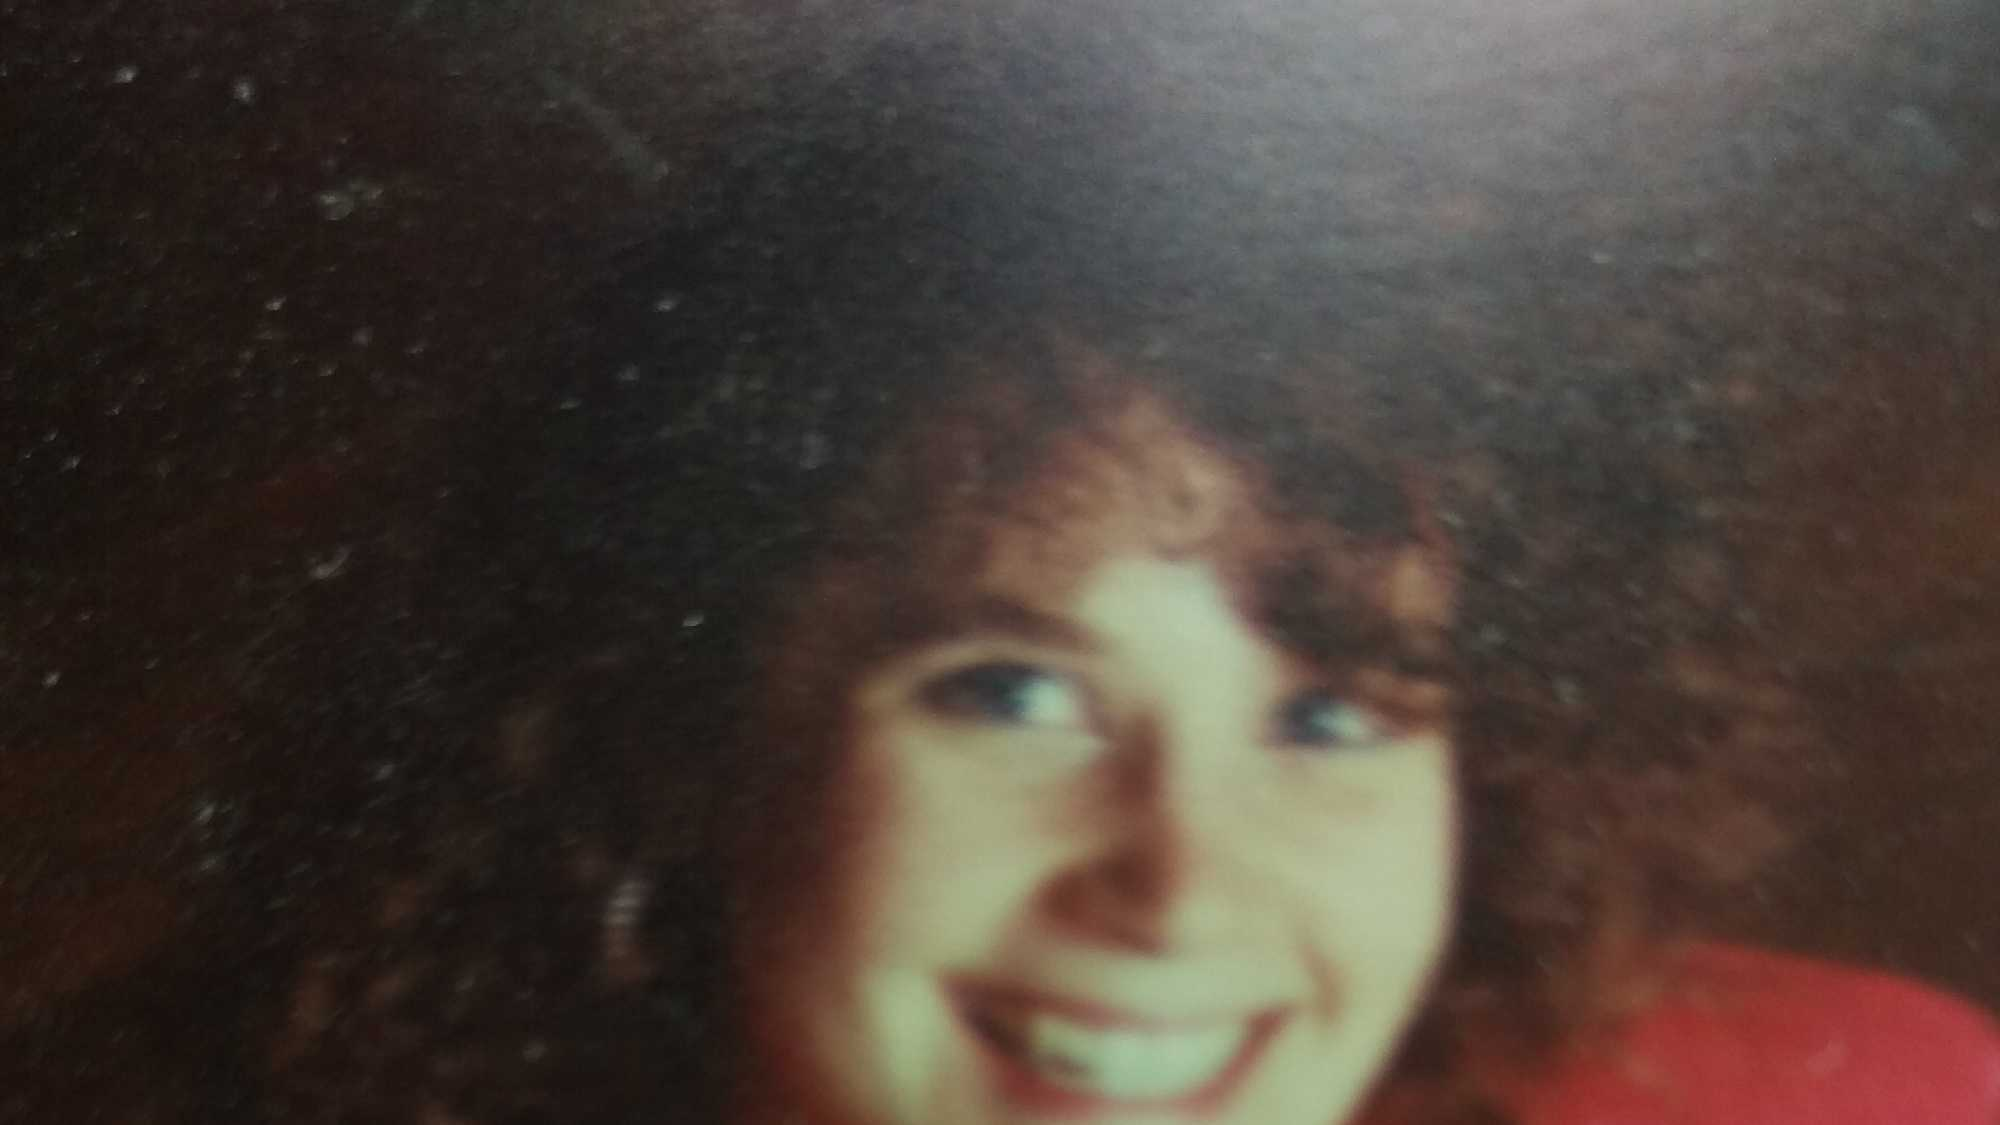 Lisa Ziegert, 24, of Agawam, was found dead in April 1992.